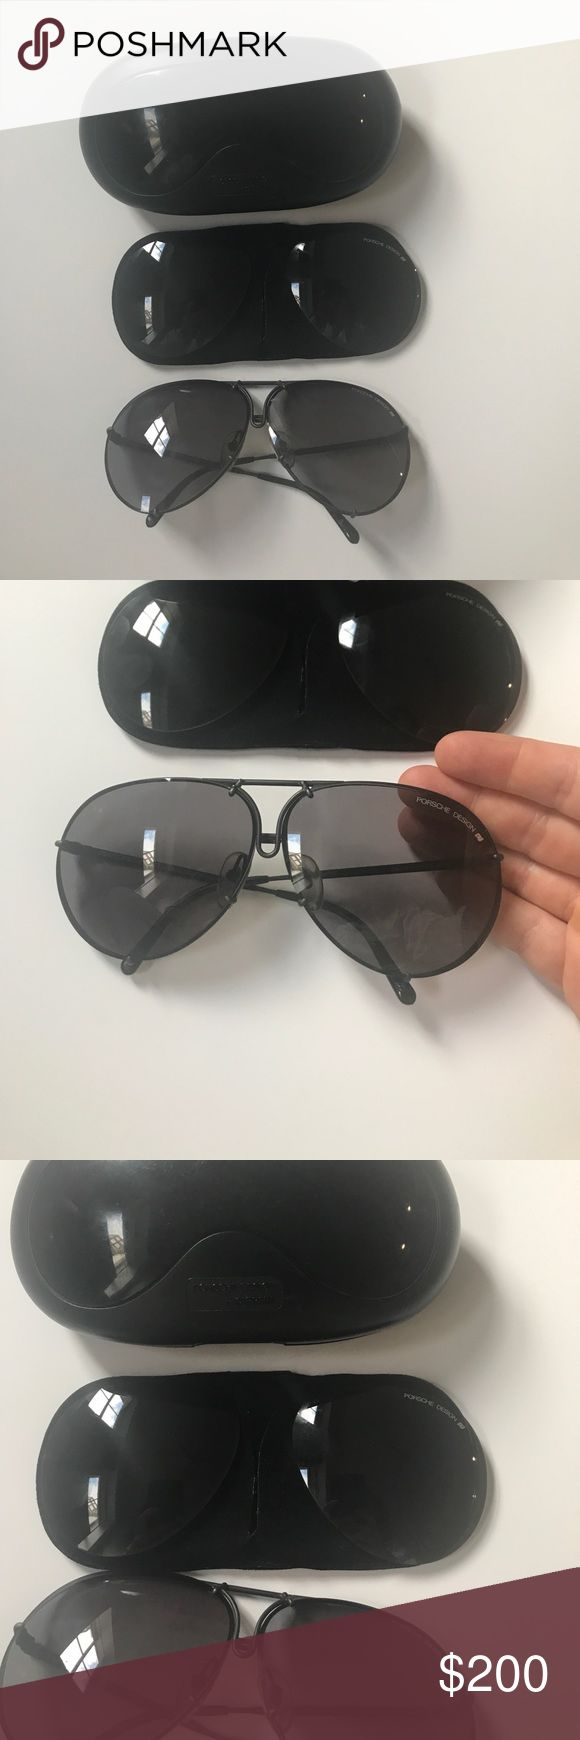 Porsche carrera sunglasses Authentic Porsche Carrera sunglasses. Good lightly used condition. Some scratches on end of one ear arm, not really visible when worn. Comes w replacement lenses Accessories Sunglasses